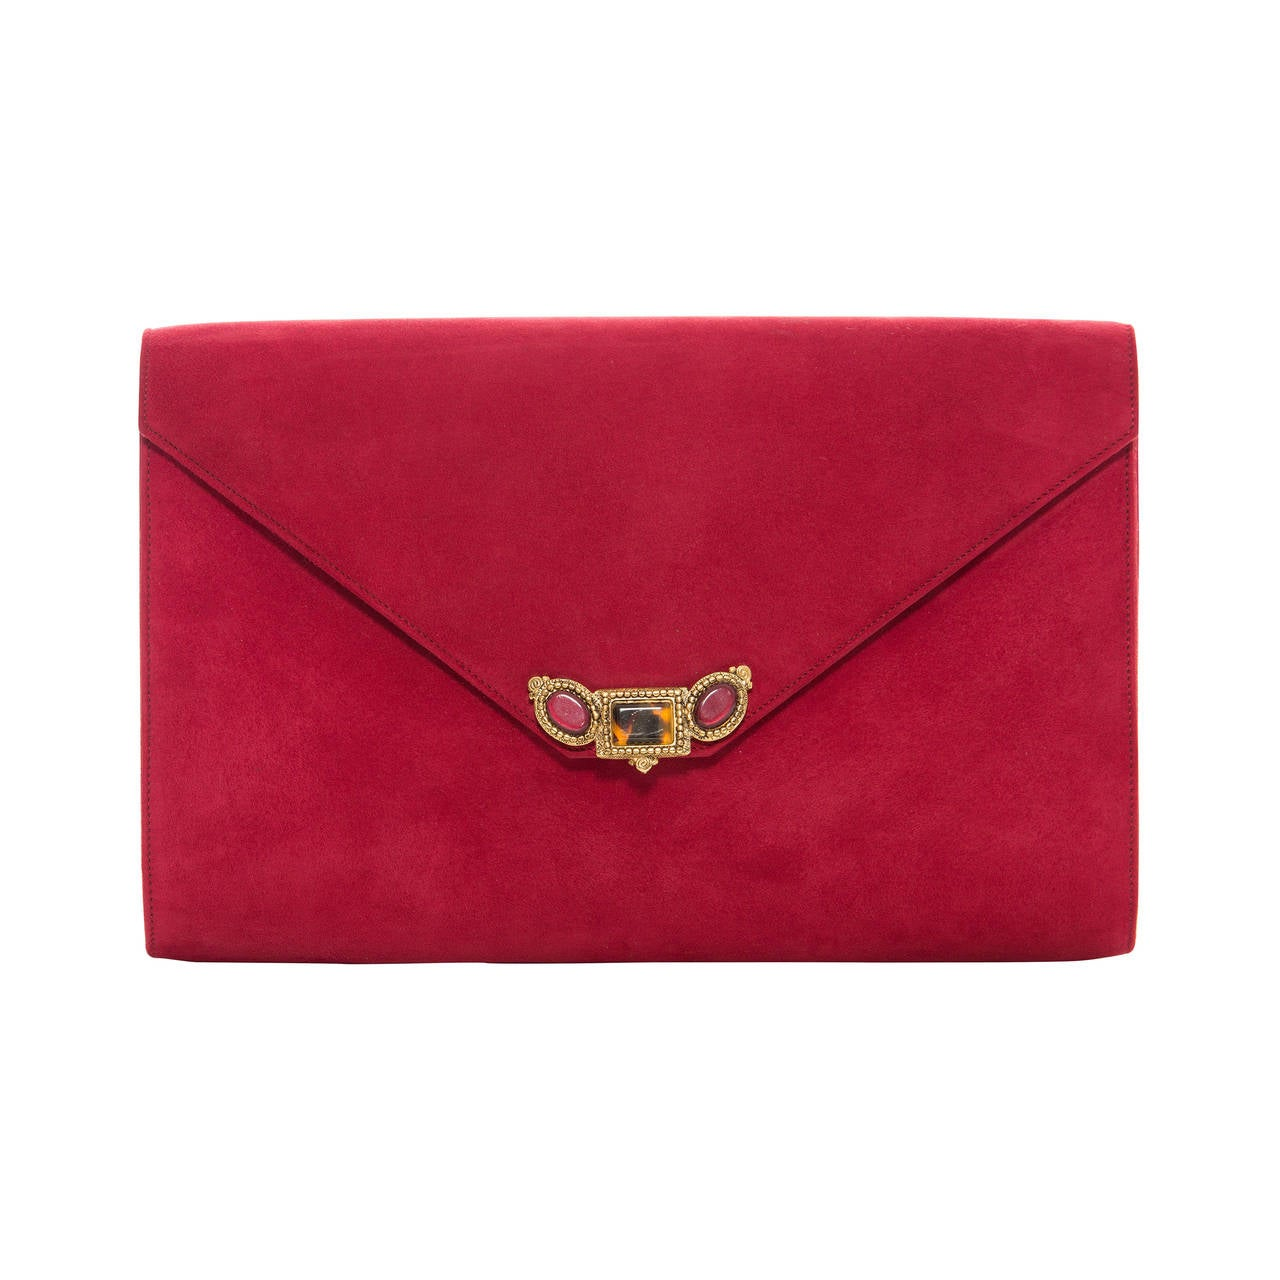 Bally Suede Clutch with Shoulder Strap Circa 1980s For Sale